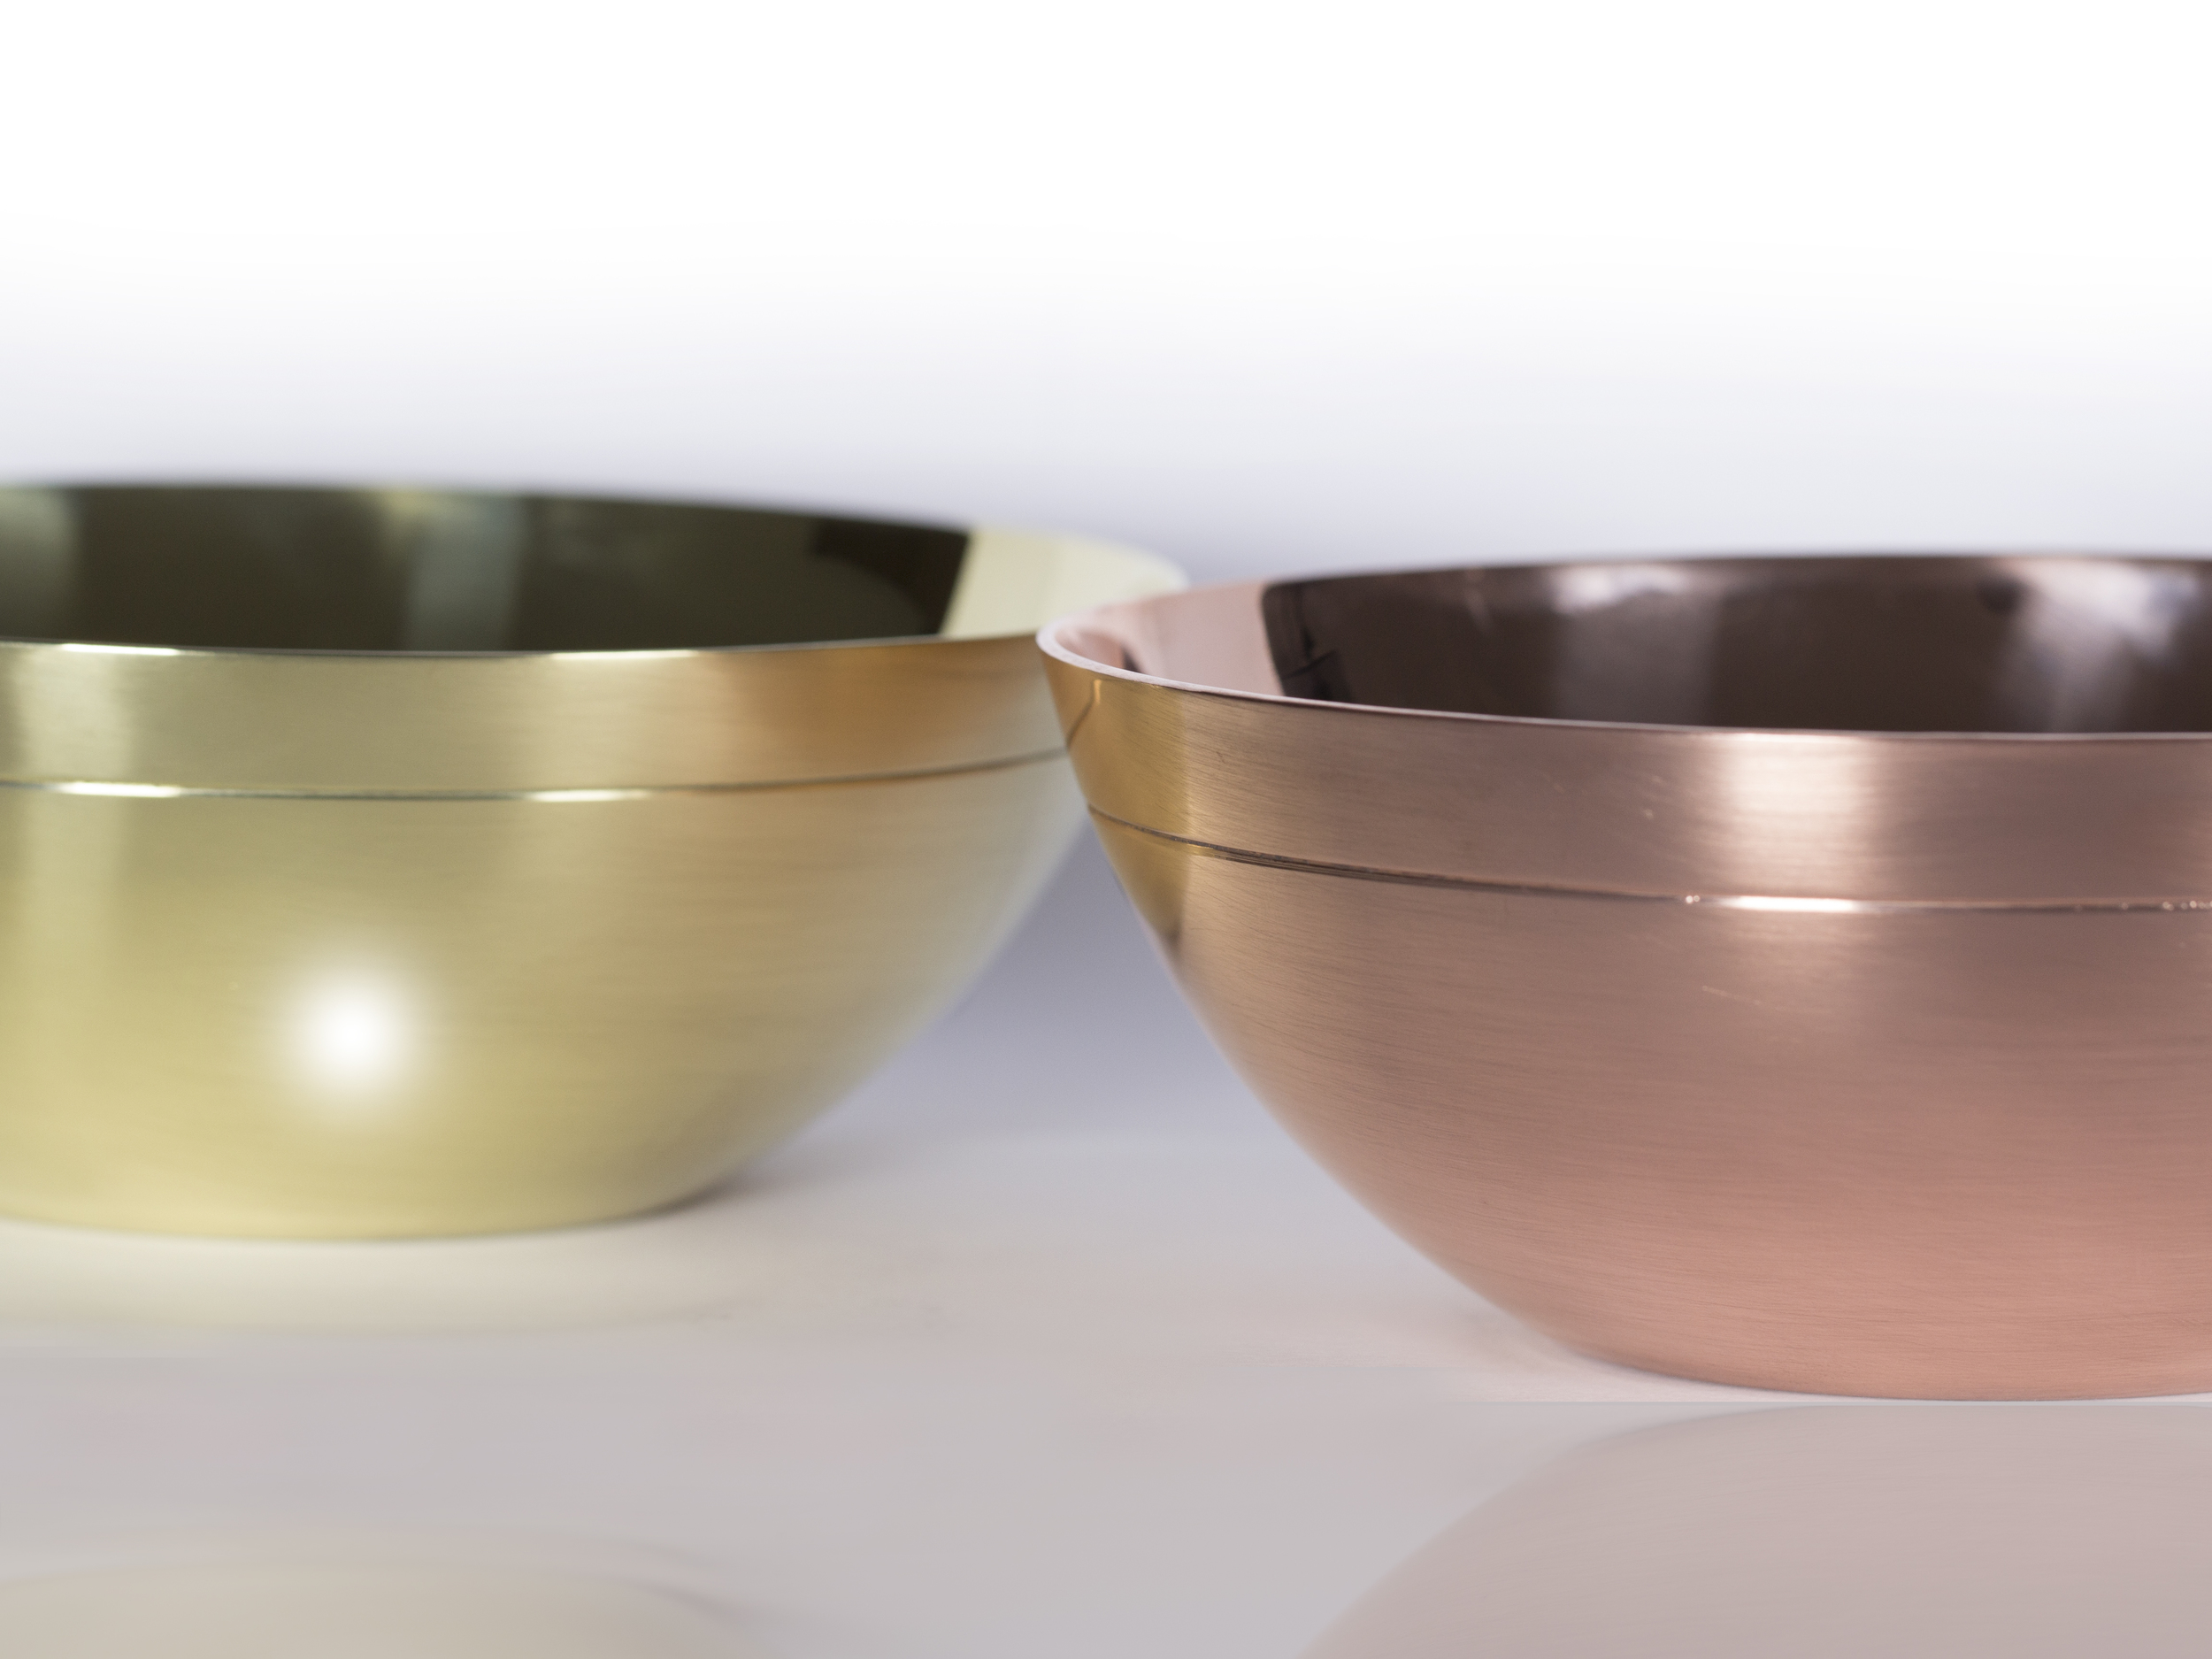 Spun Copper and Brass   New product in! We are excited to introduce our hand spun range of bowls from 100% Copper and Brass. More spun products out soon!